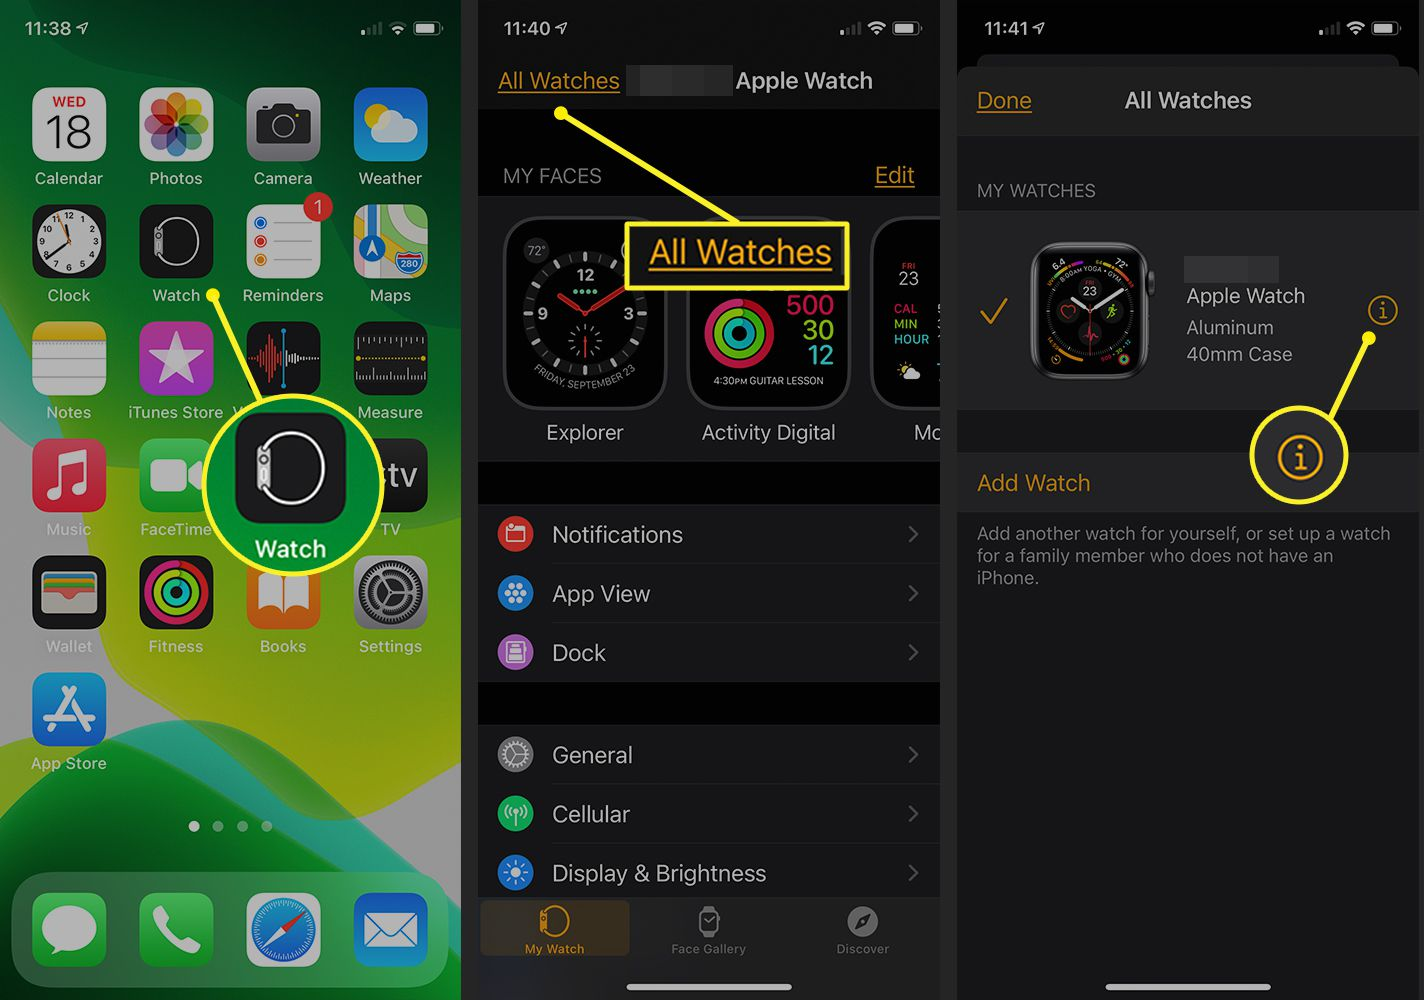 Watch App on iPhone showing the Apple Watch interface